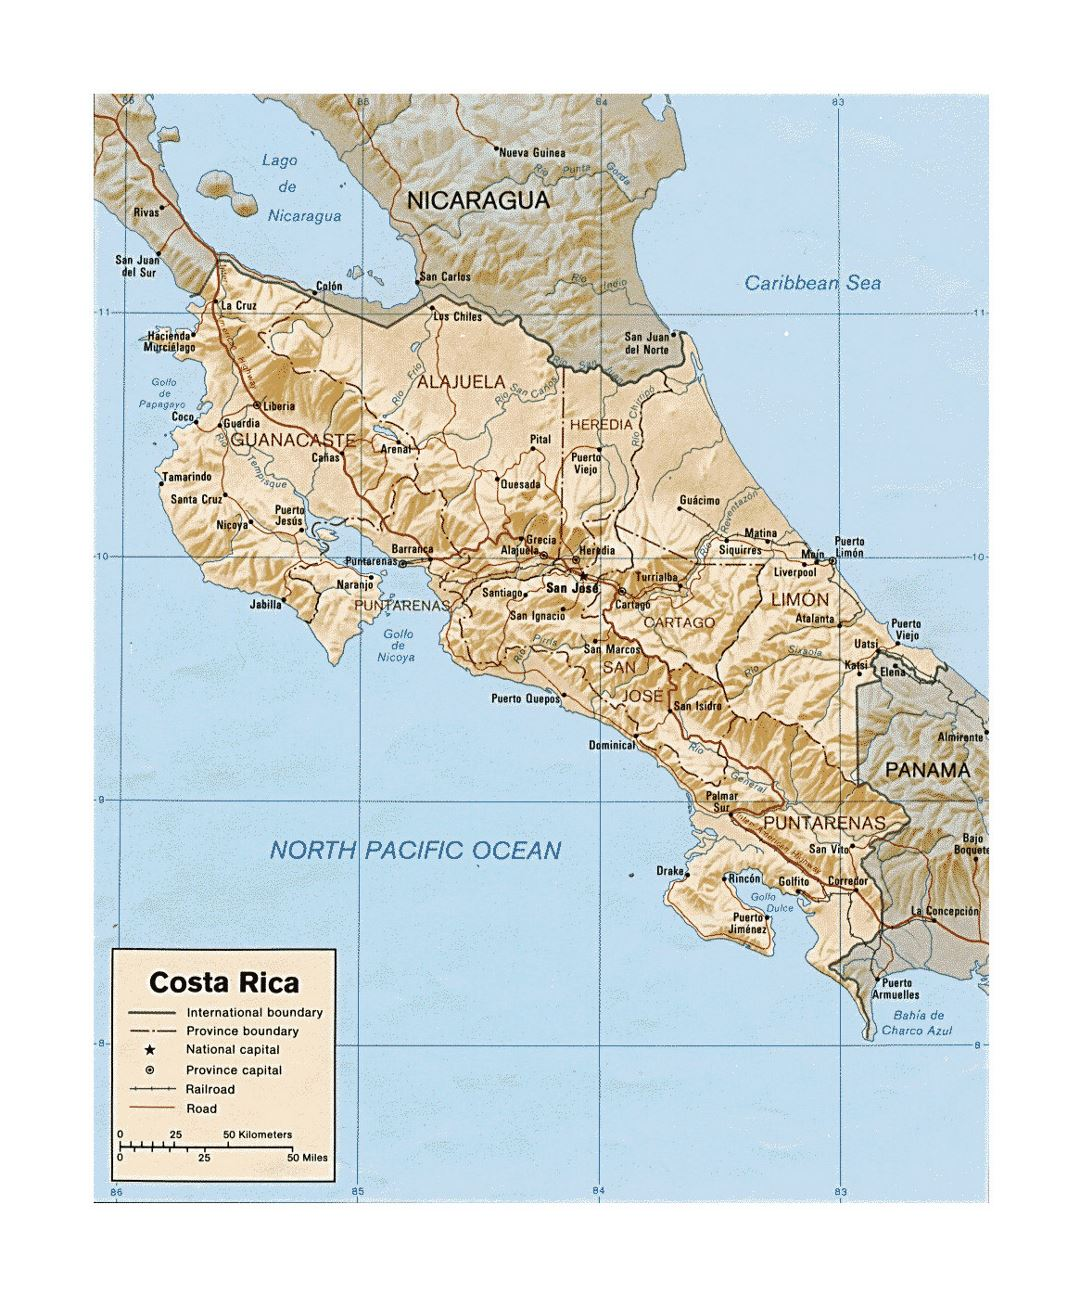 Detailed political and administrative map of Costa Rica with relief, roads, railroads and major cities